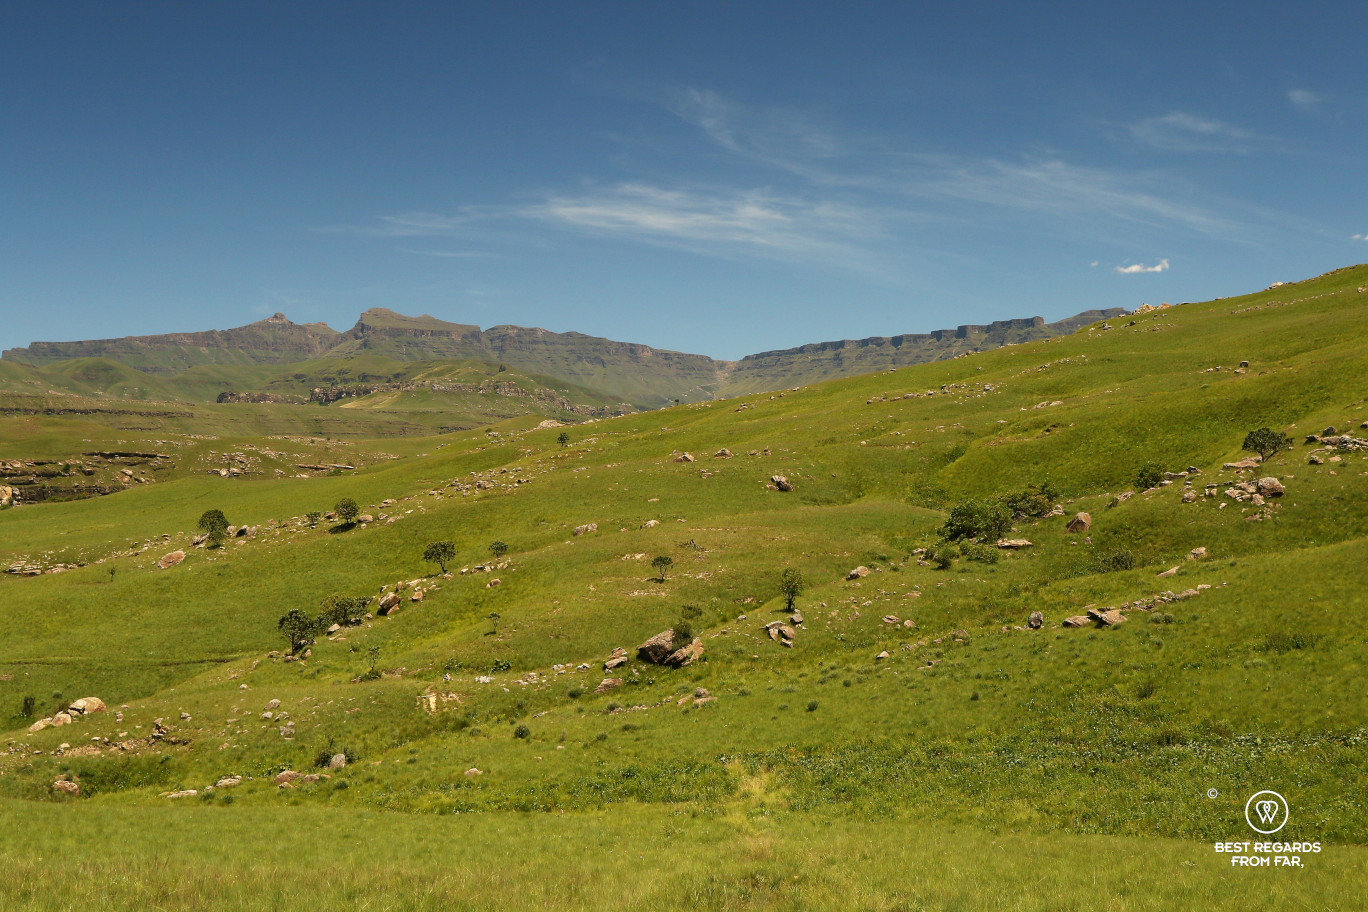 Sani Pass in the in the background with the green rolling hills of the Drakensberg.